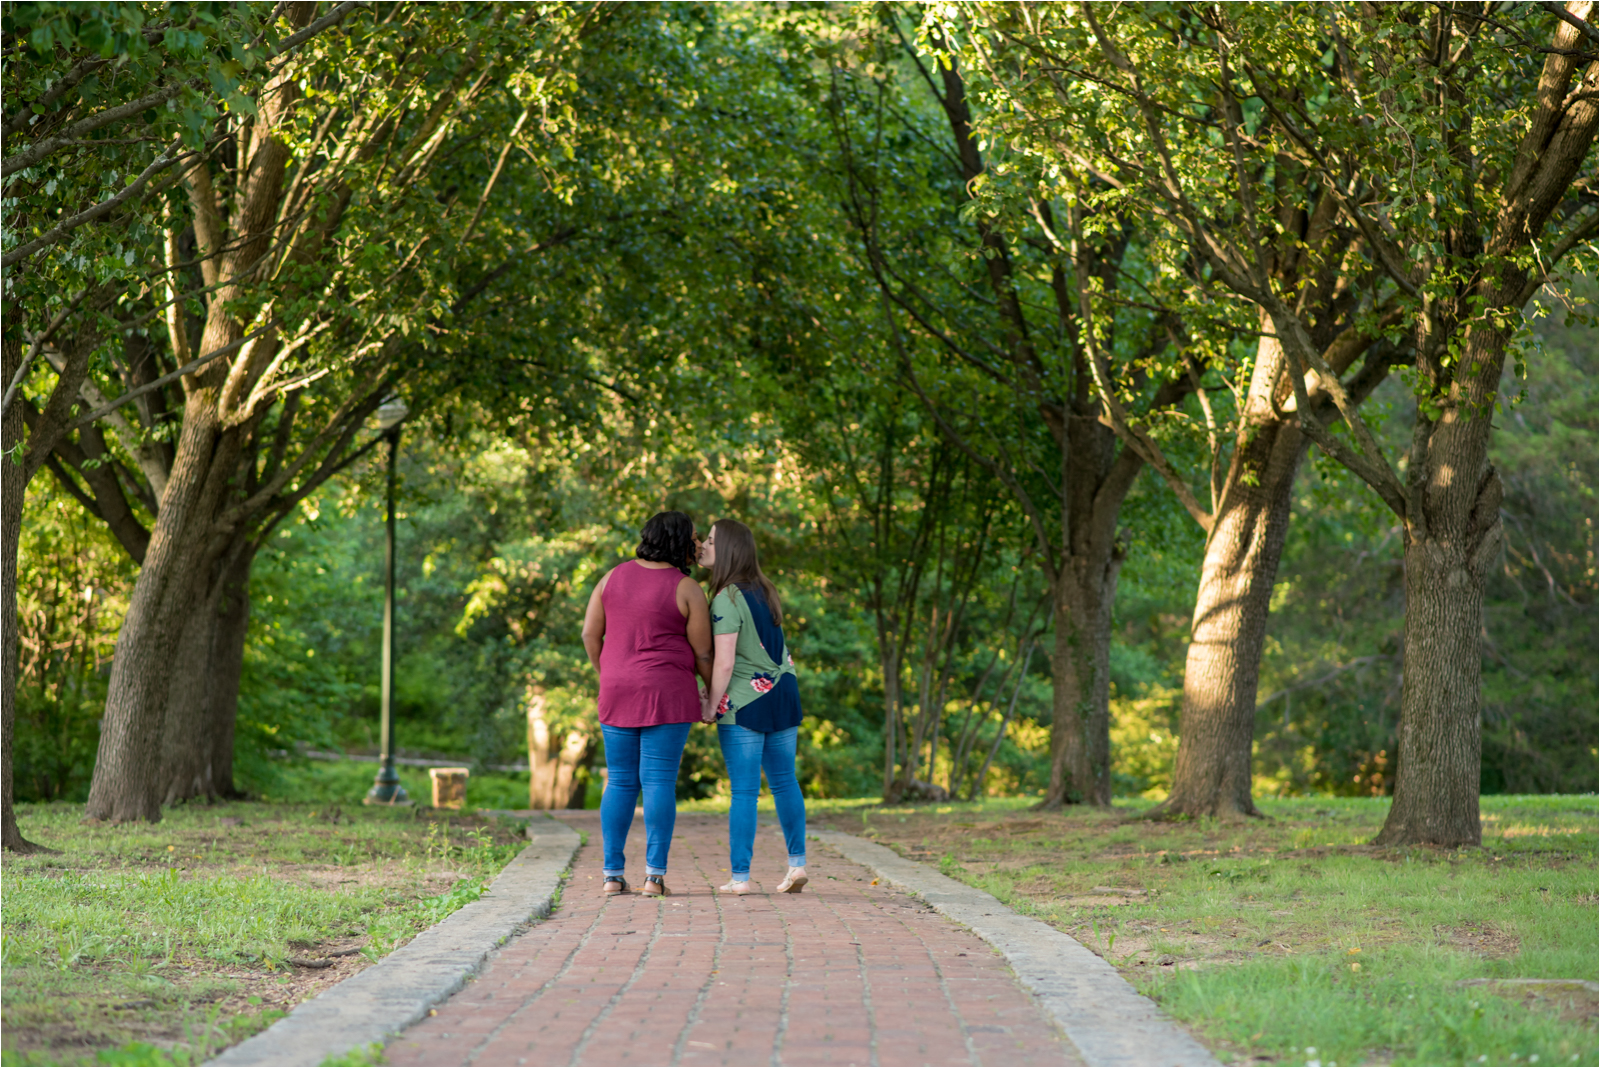 engagement-session-forest-hill-park-lesbian-gay-wedding-equality-interracial-marriage-lake-lakeside-stone-house-rva-richmond-virginia-focus-on-joy-photography